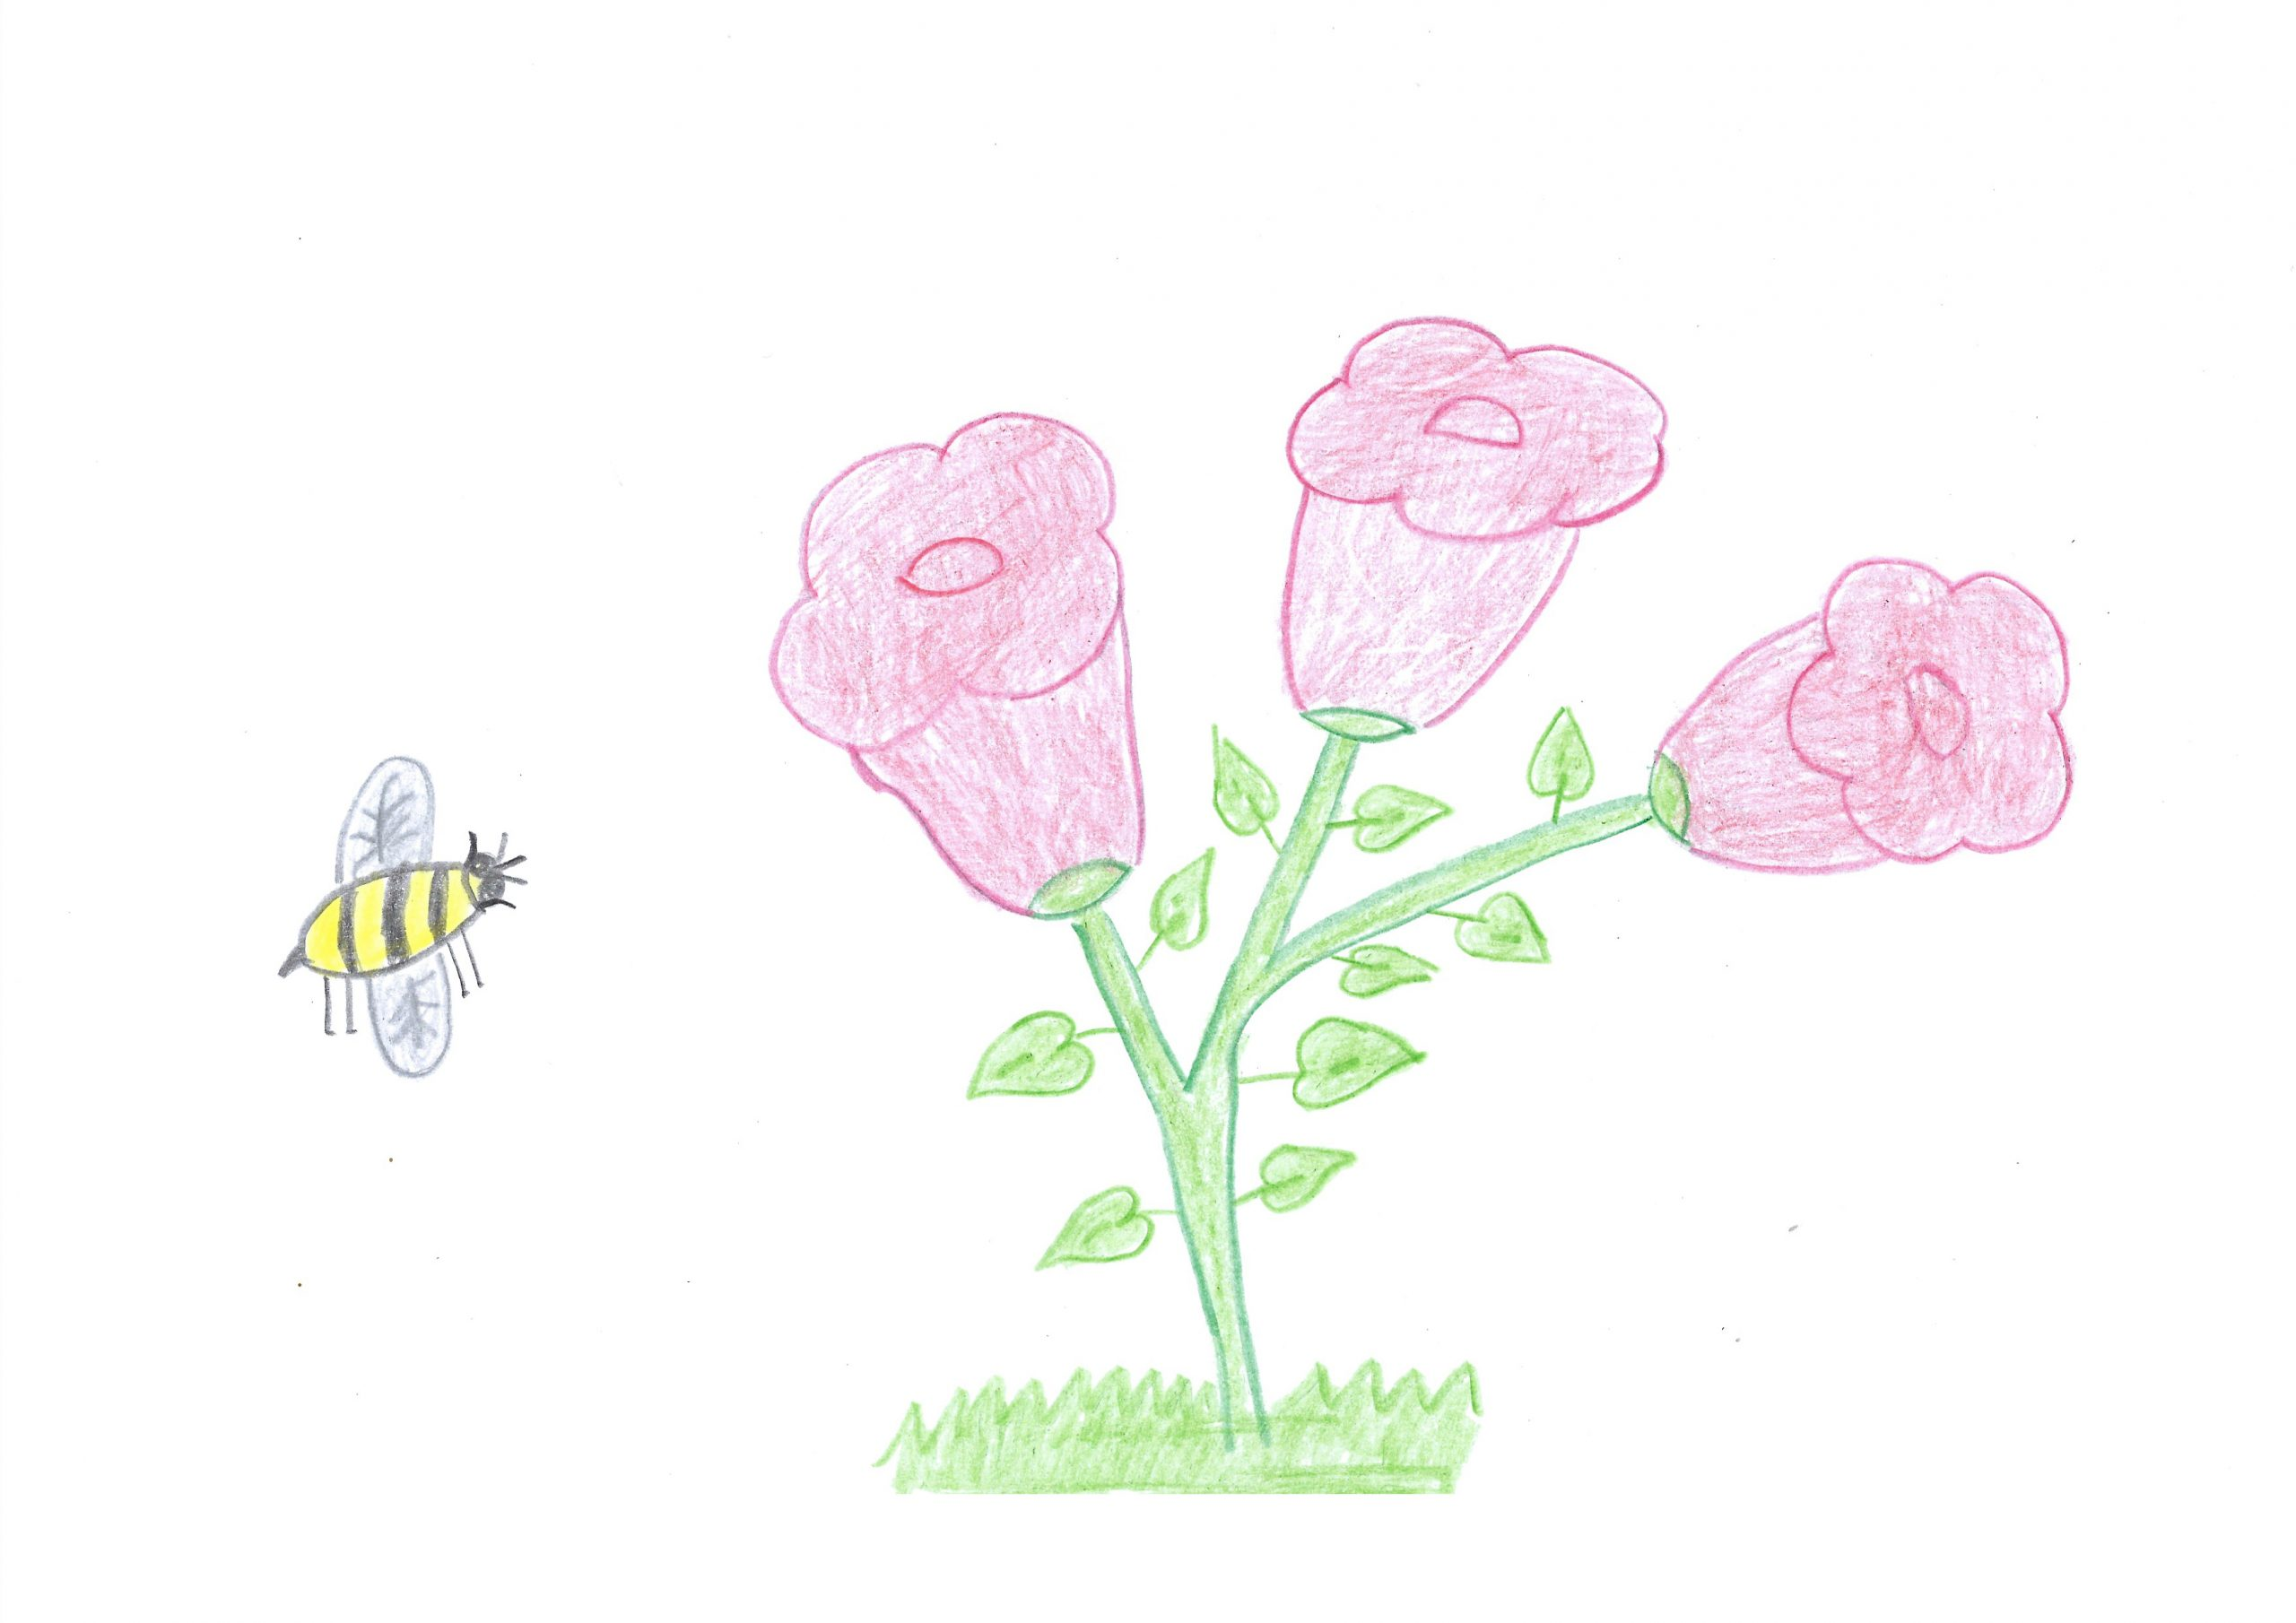 Eiru oheka yvoty kuera — The bee searches for flowers